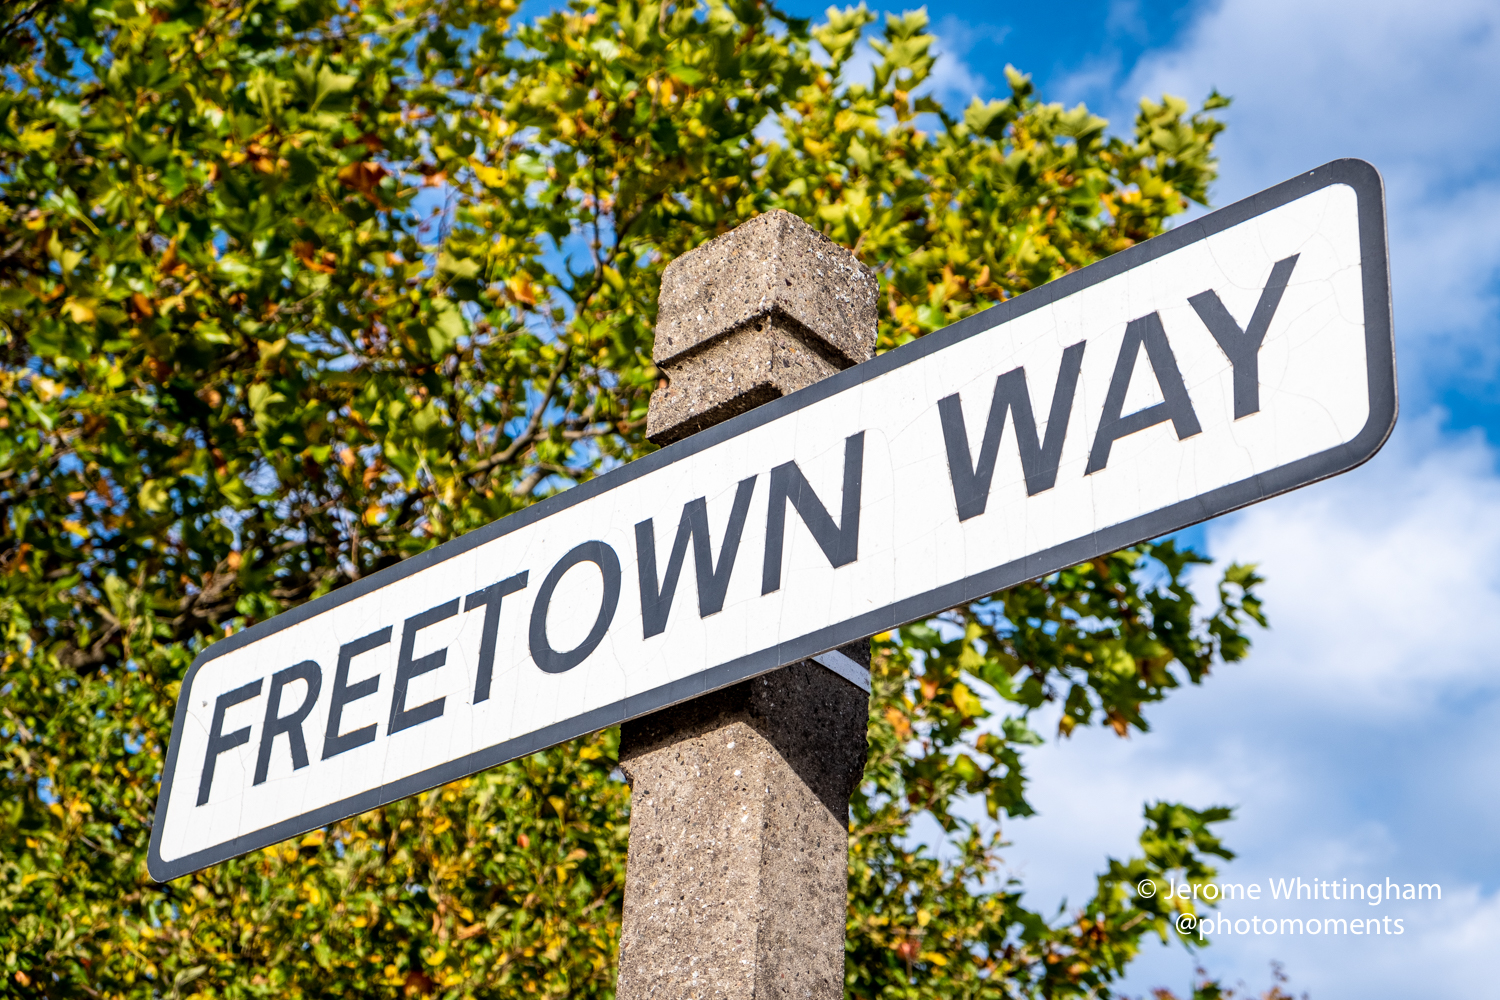 Freetown Way Hull